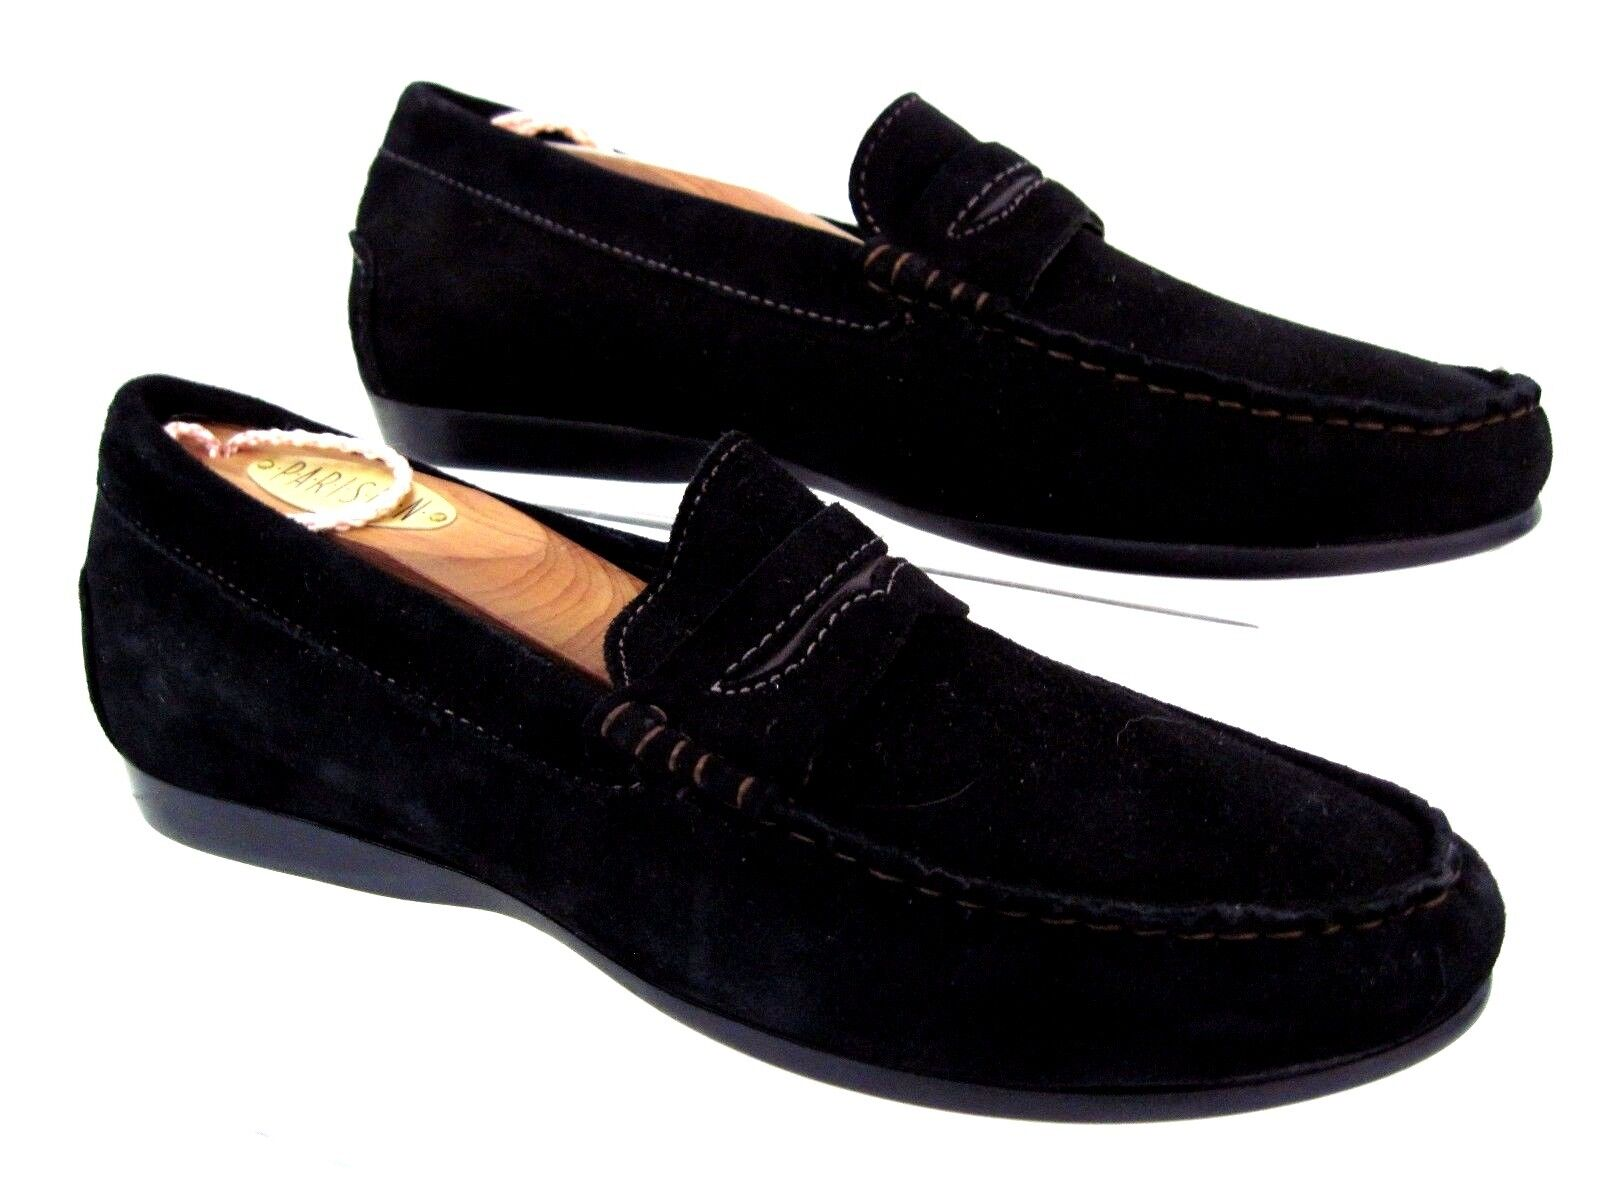 MUNRO American Black Suede Penny Style Loafers Size 6.5 6.5 6.5 M USA 0dd96f